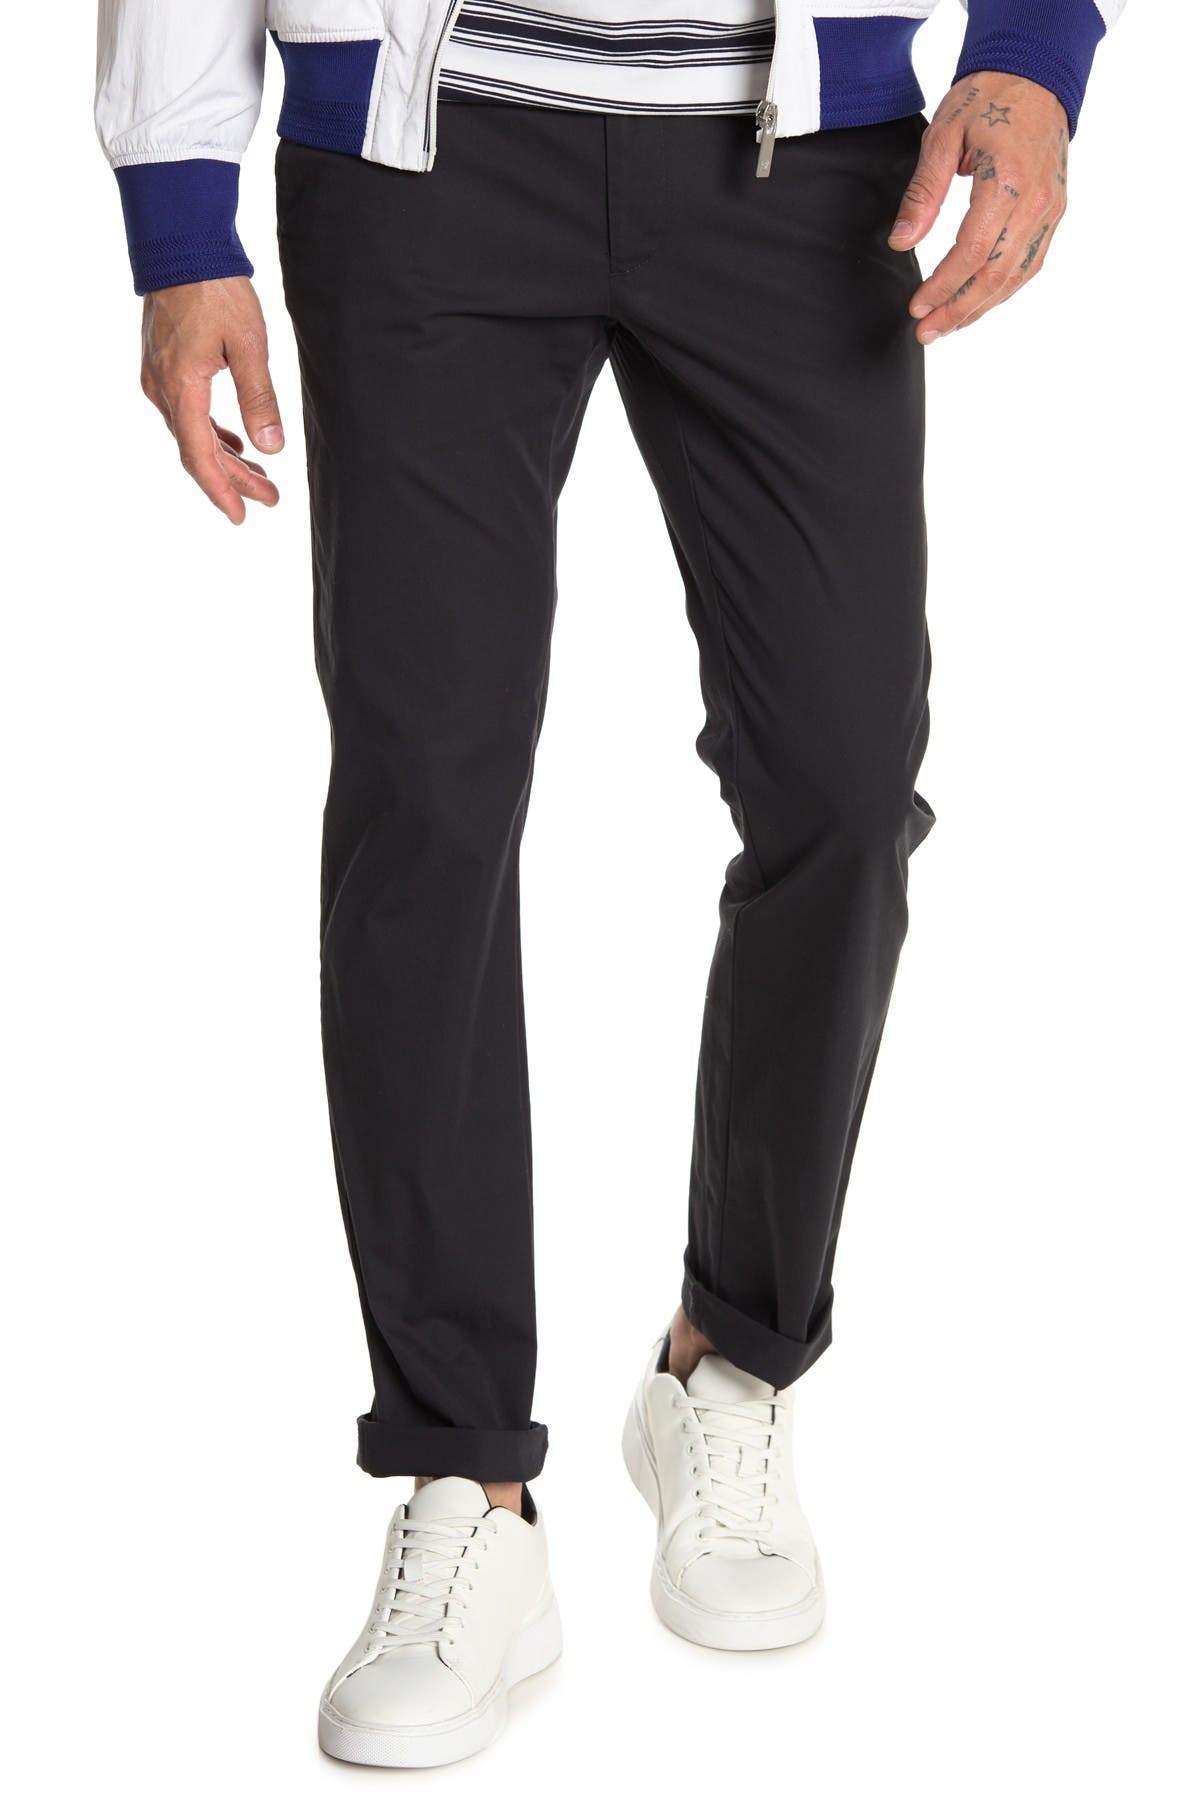 Image of Cole Haan Flat Front Pants